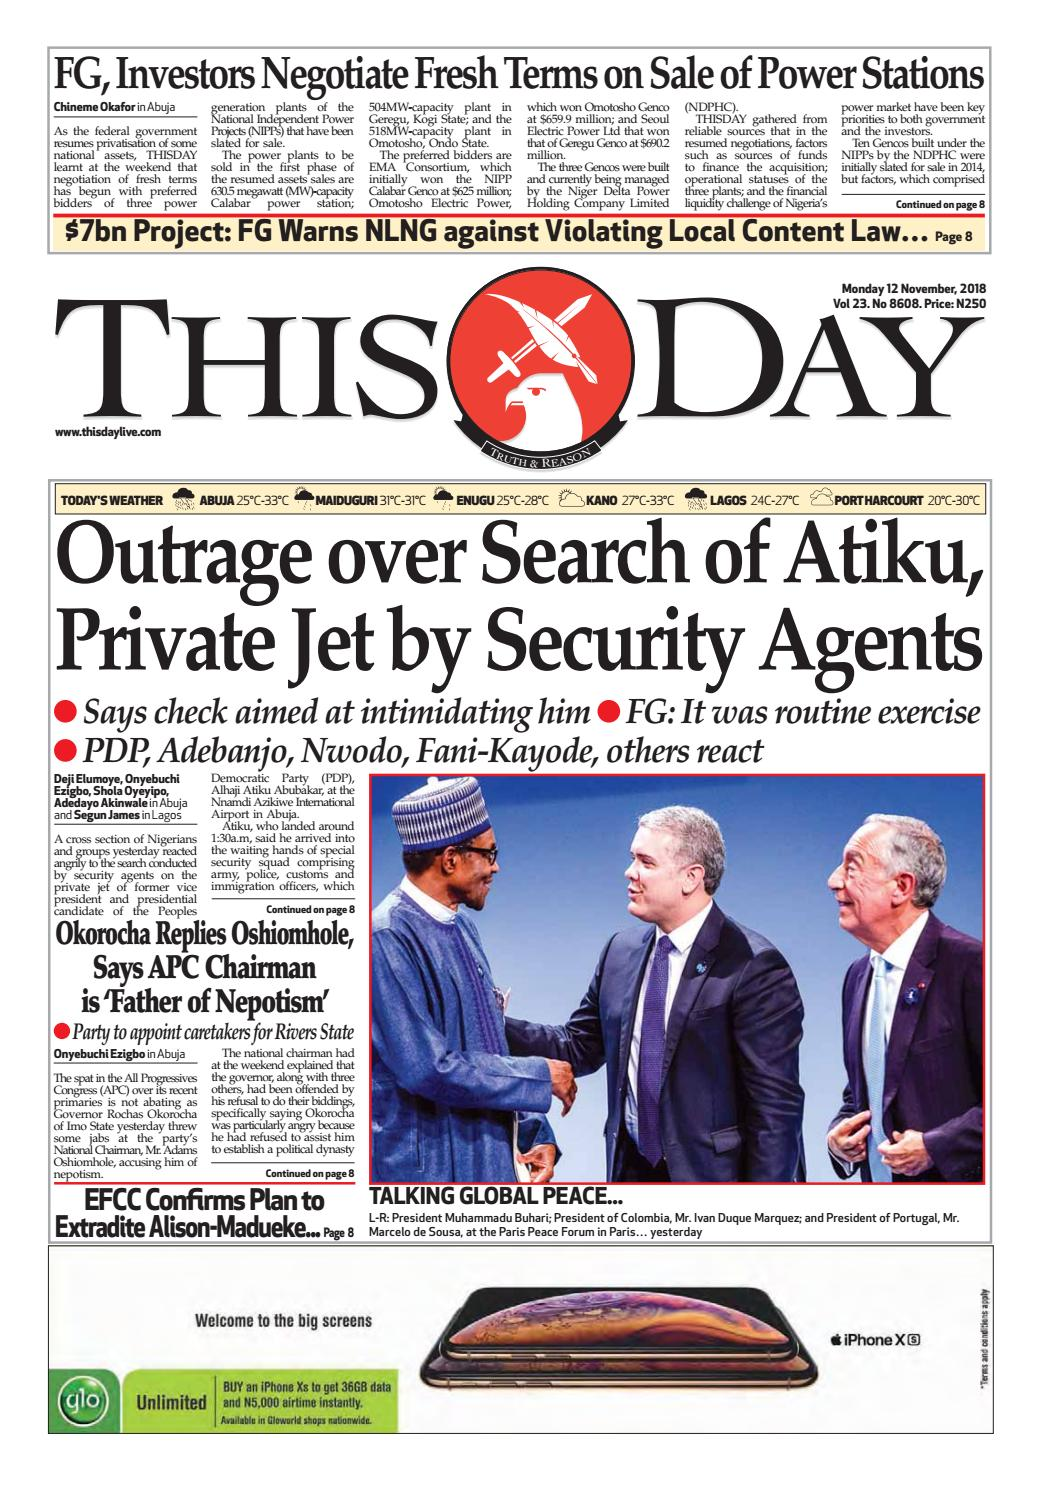 22c4b392d11 MONDAY 12TH NOVEMBER 2018 by THISDAY Newspapers Ltd - issuu